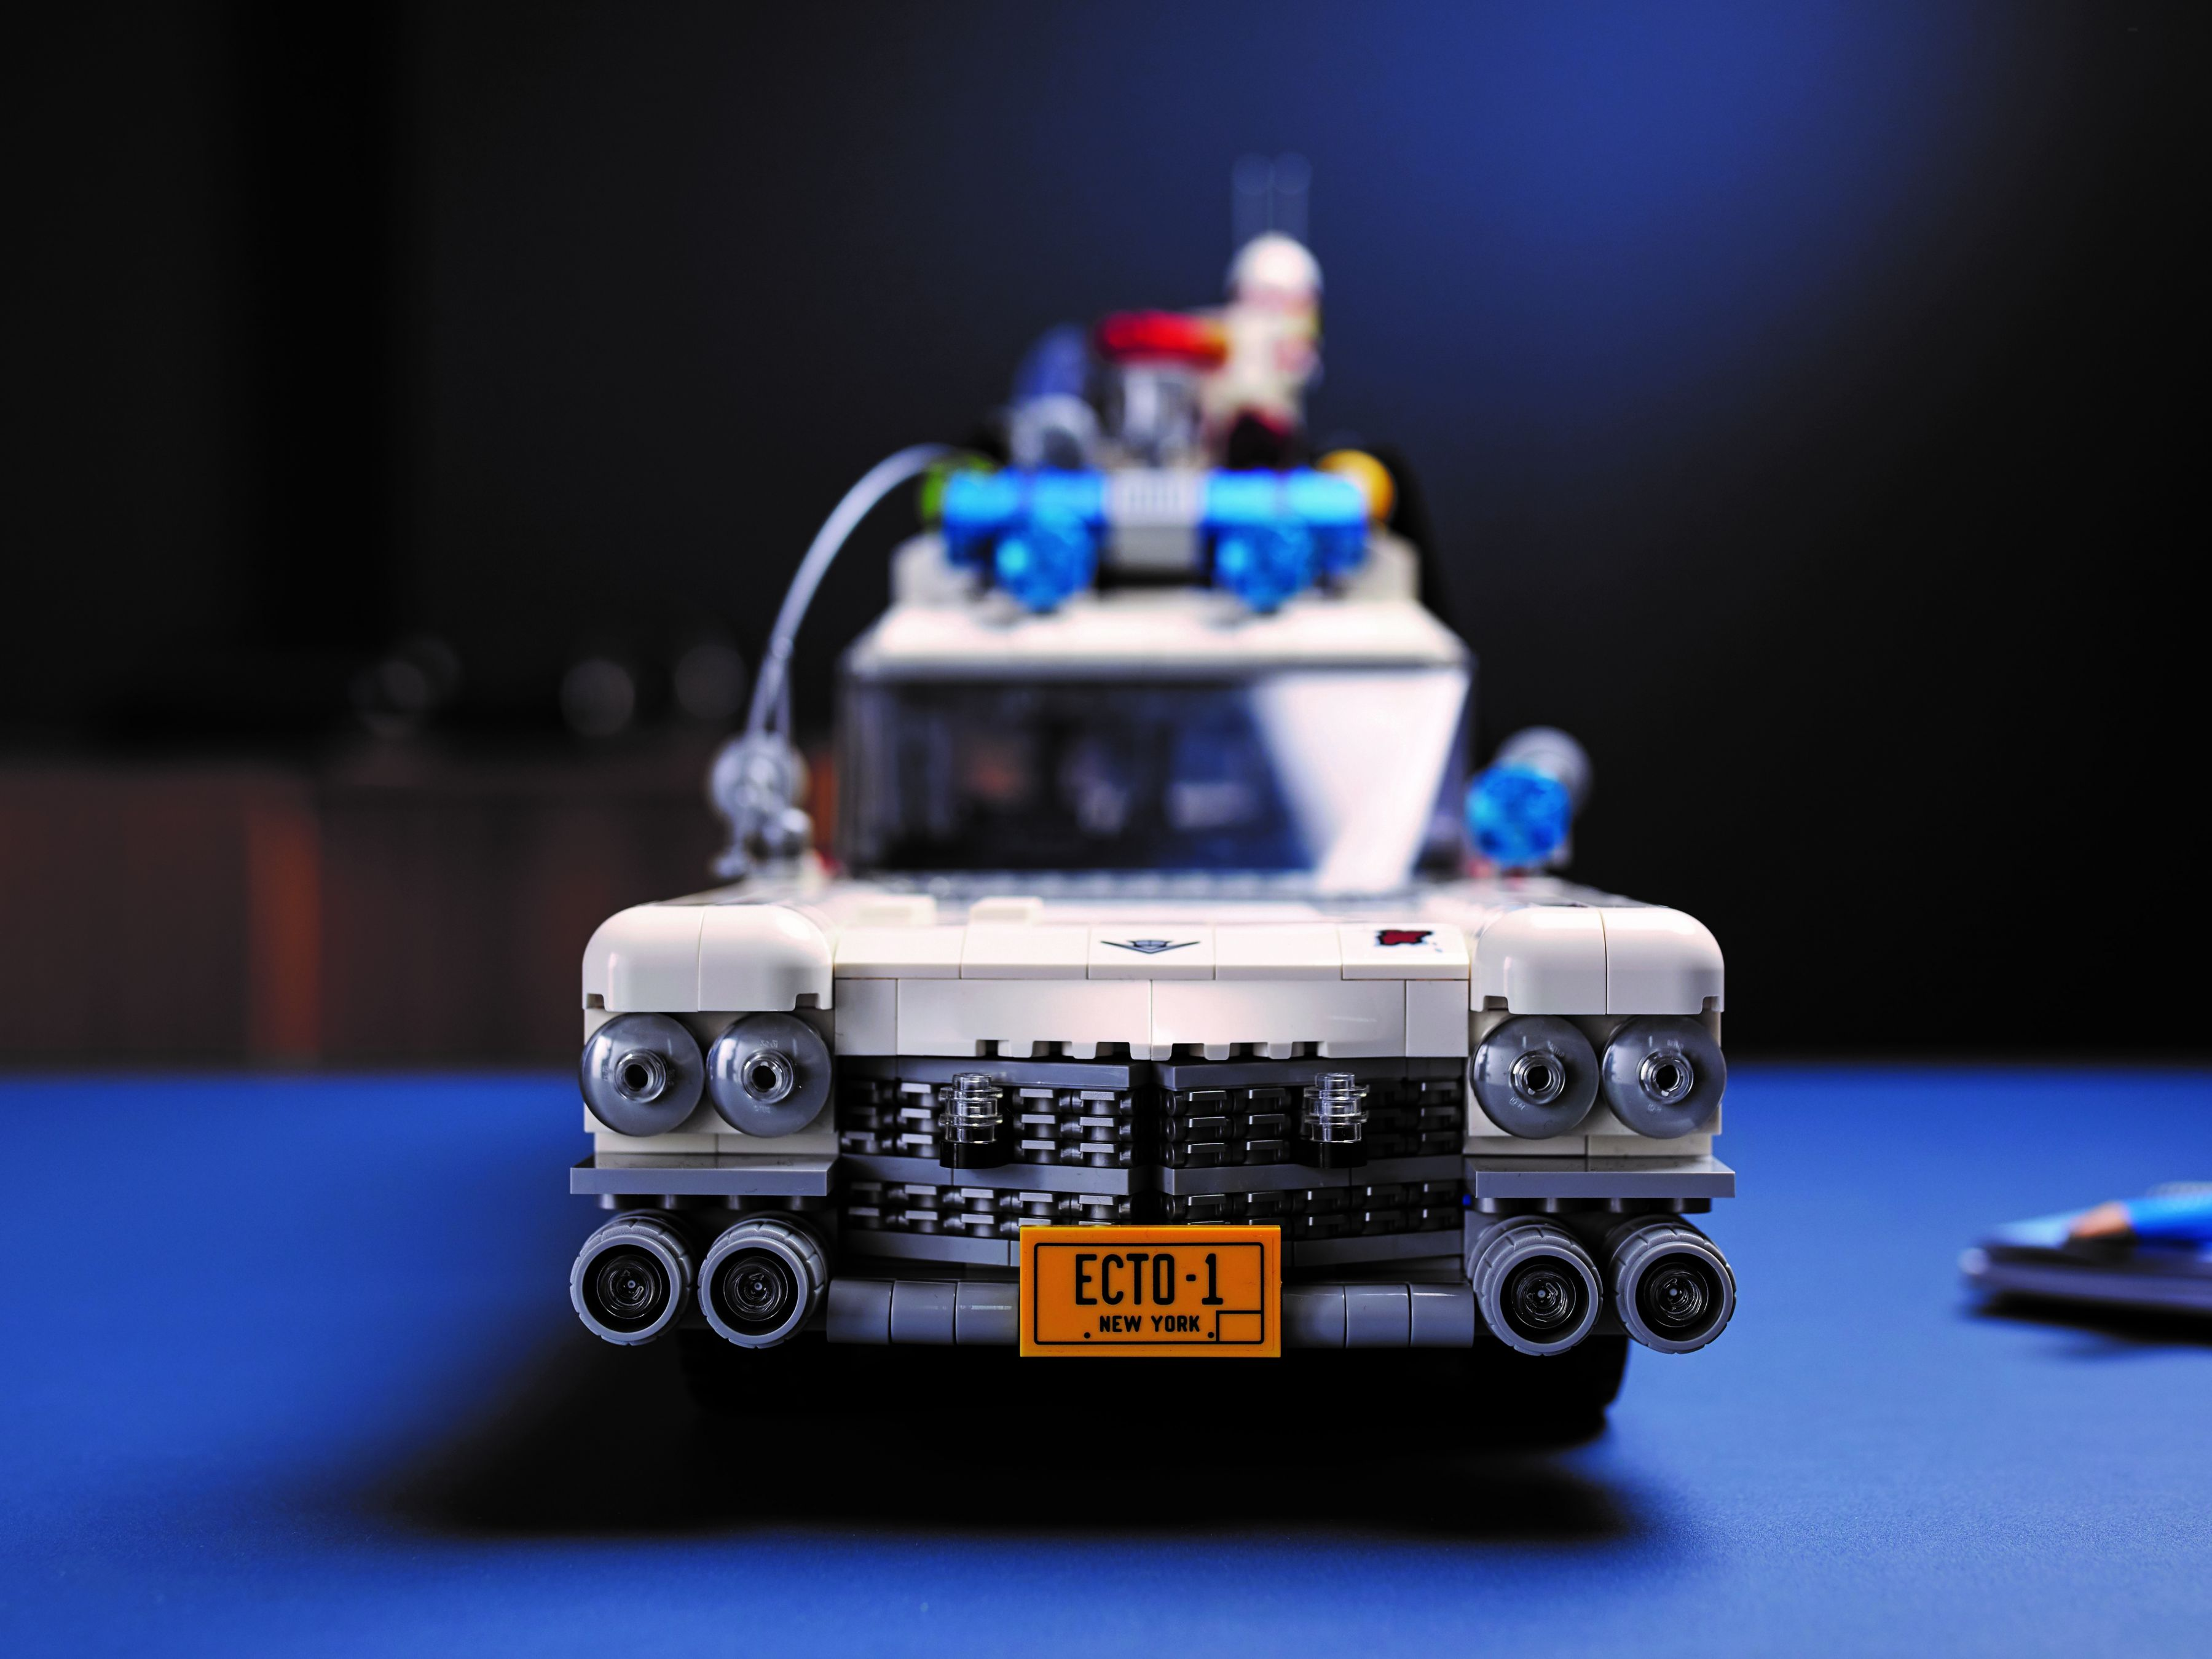 LEGO Advanced Models 10274 Ghostbusters™ ECTO-1 LEGO_10274_alt17.jpg